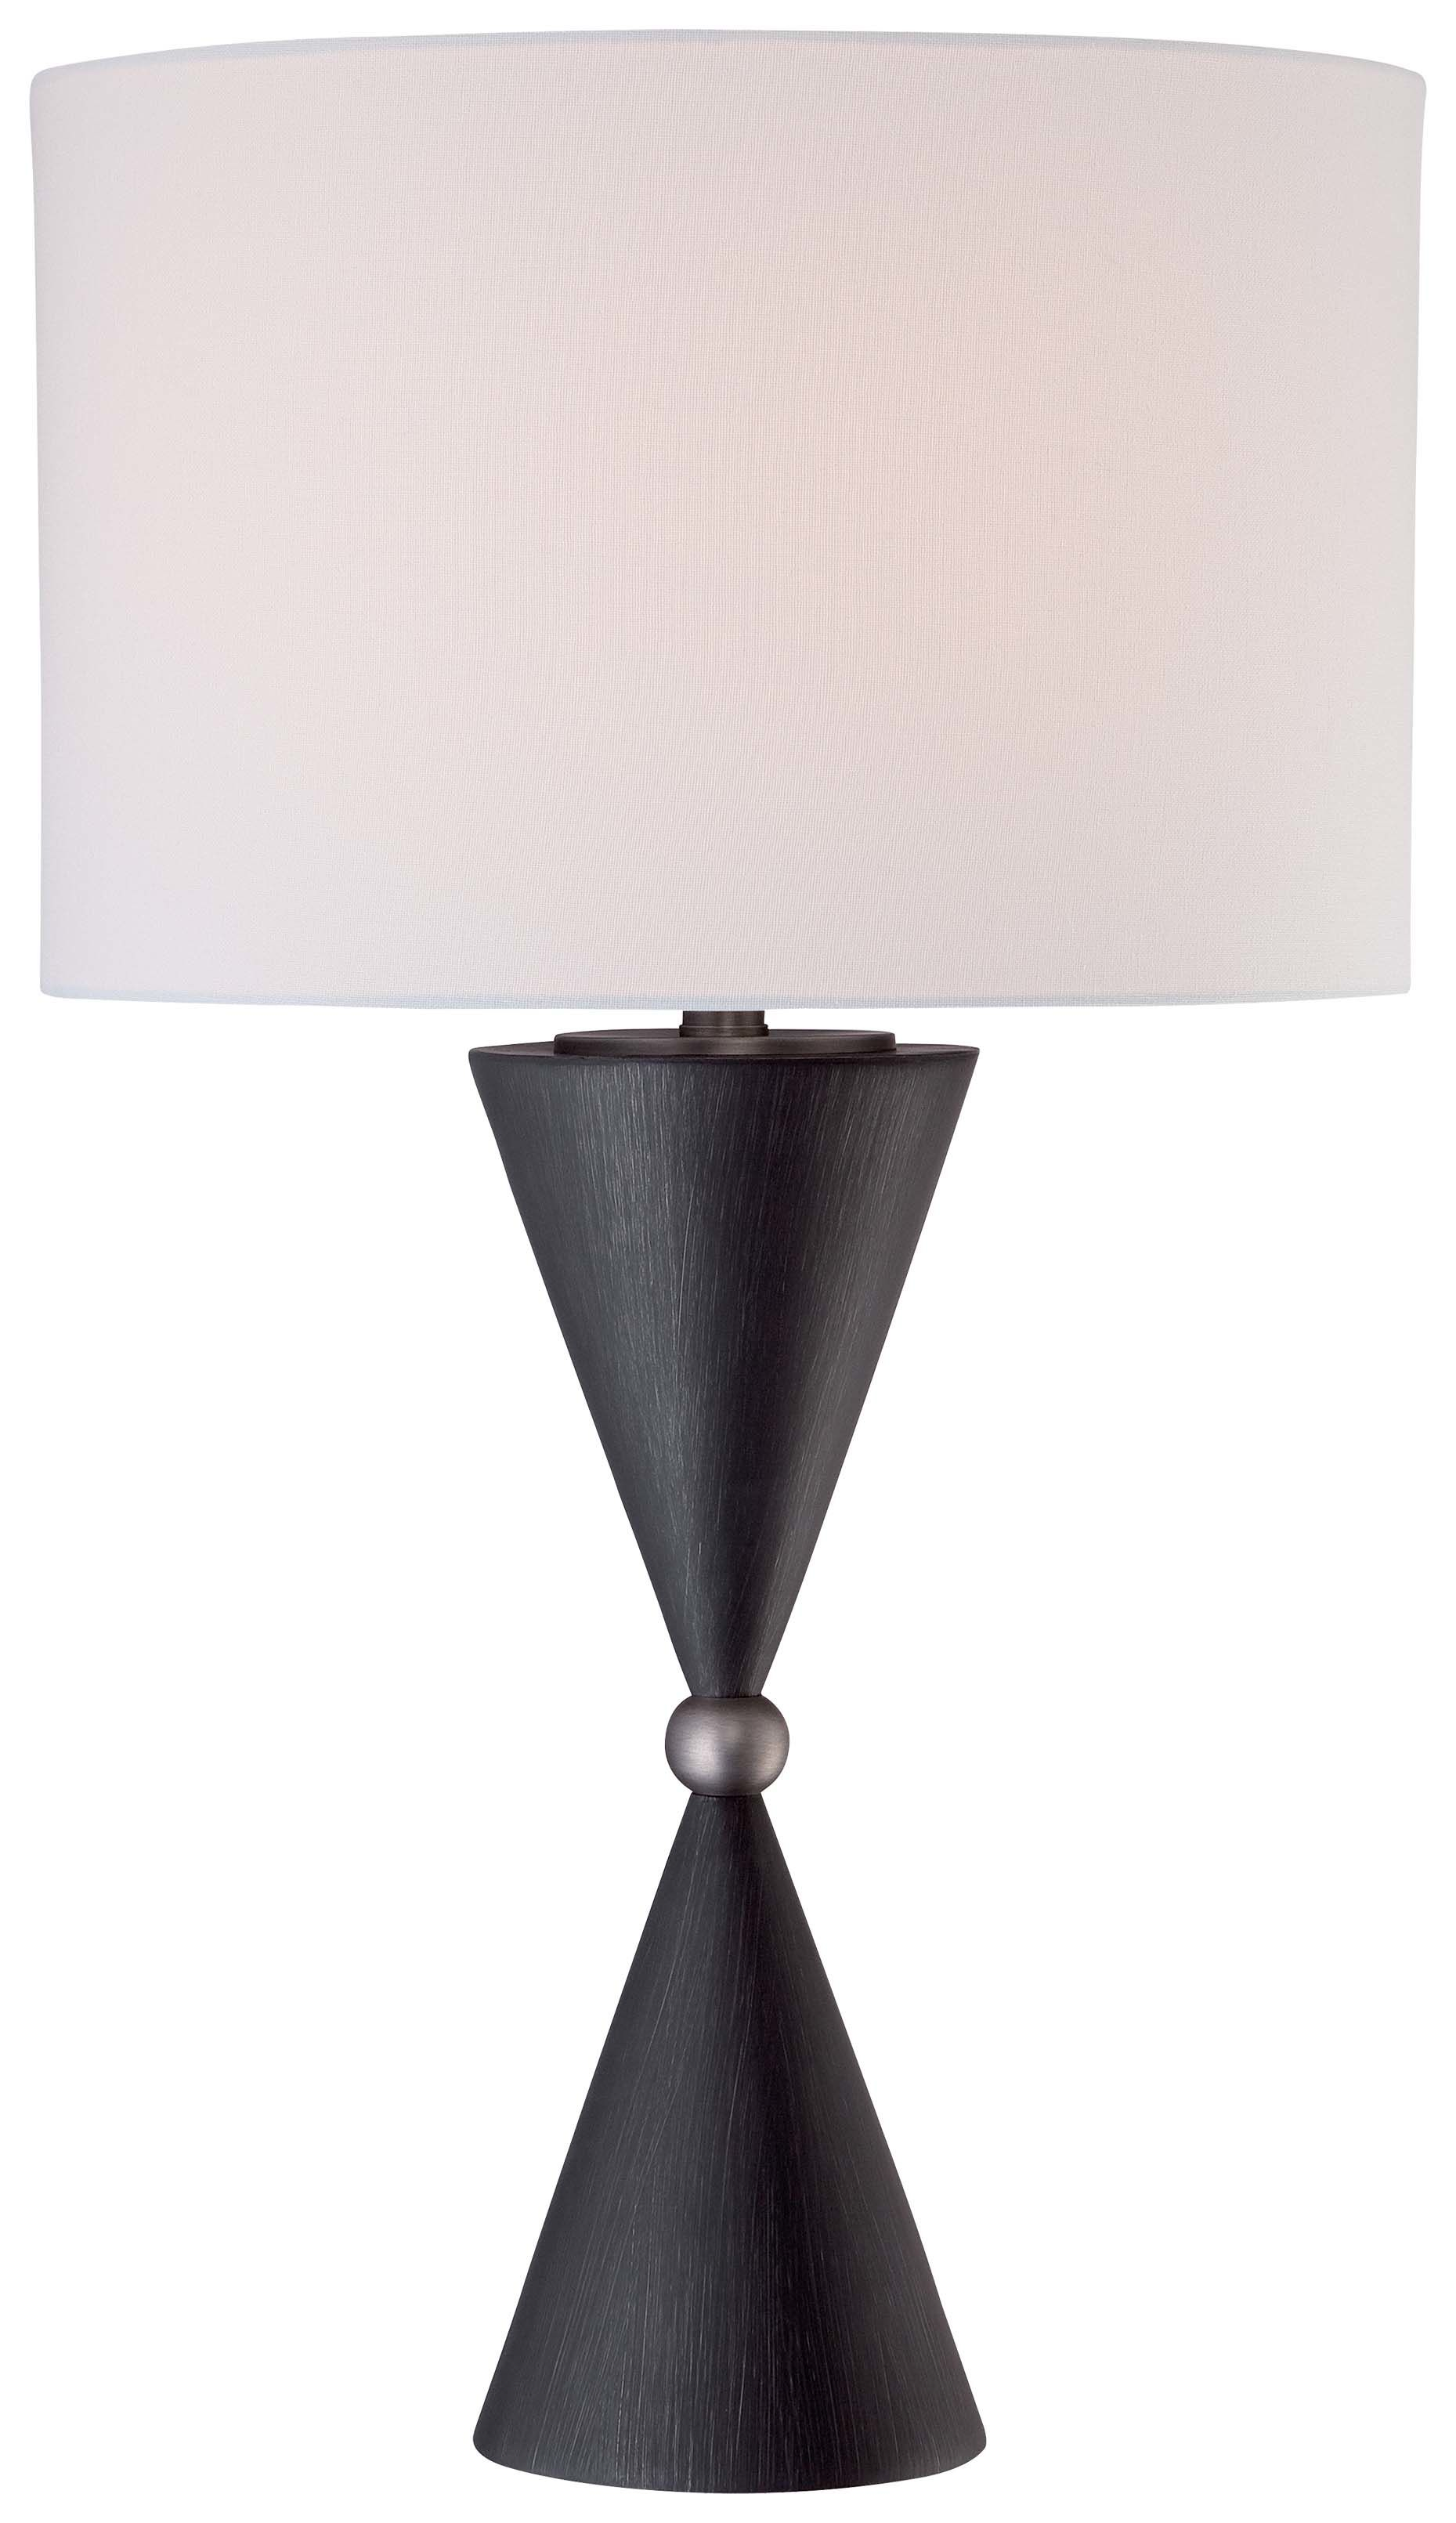 kovacs antique nickel charcoal light height accent table lamp from the portables collection lightingshowplace square marble side round nightstand small half moon hall cool home